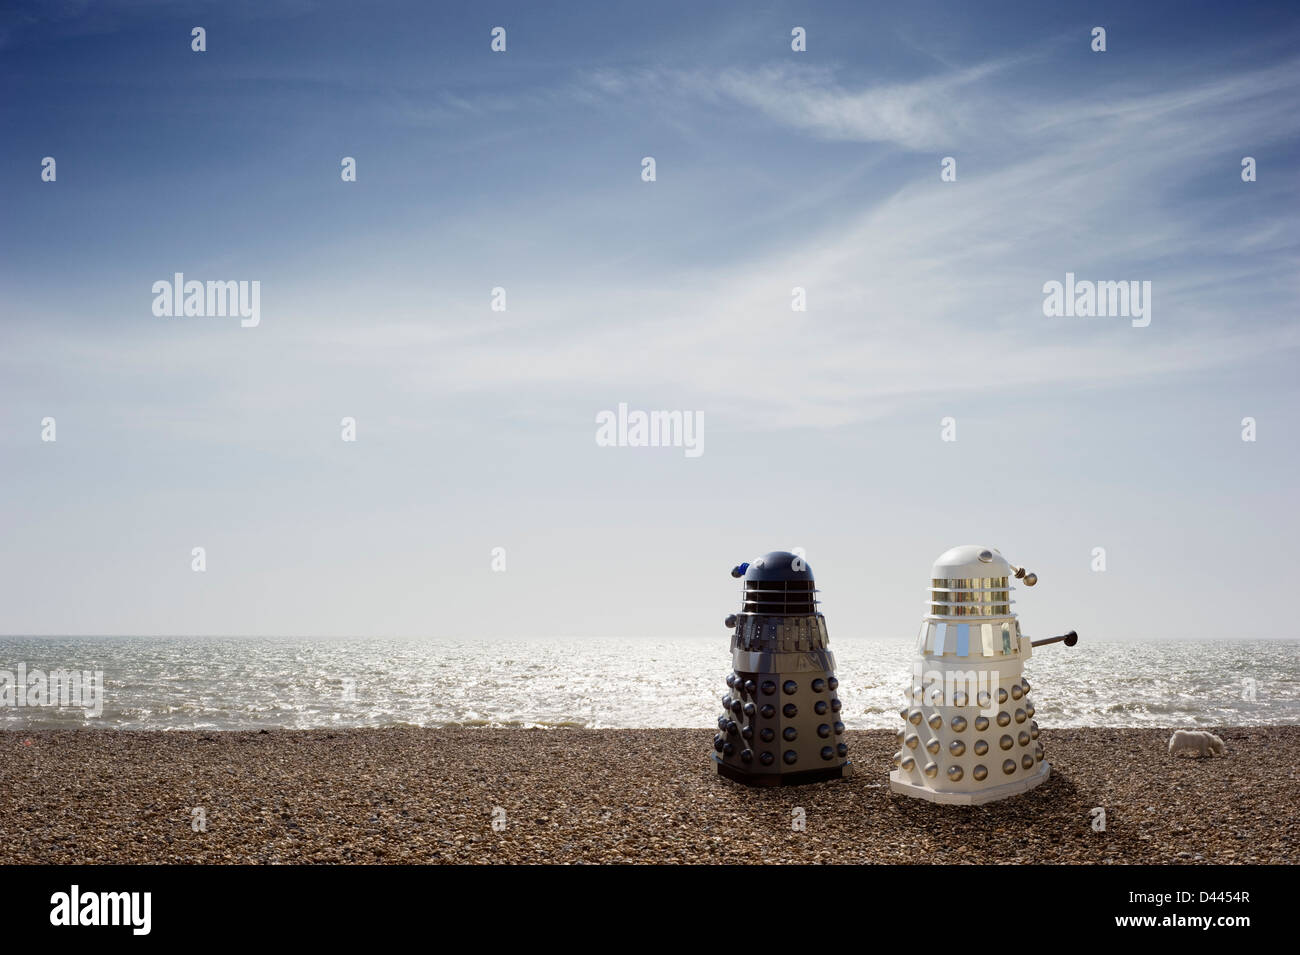 Two Dr Who Daleks taking their dog for a walk on the beach, UK - Stock Image